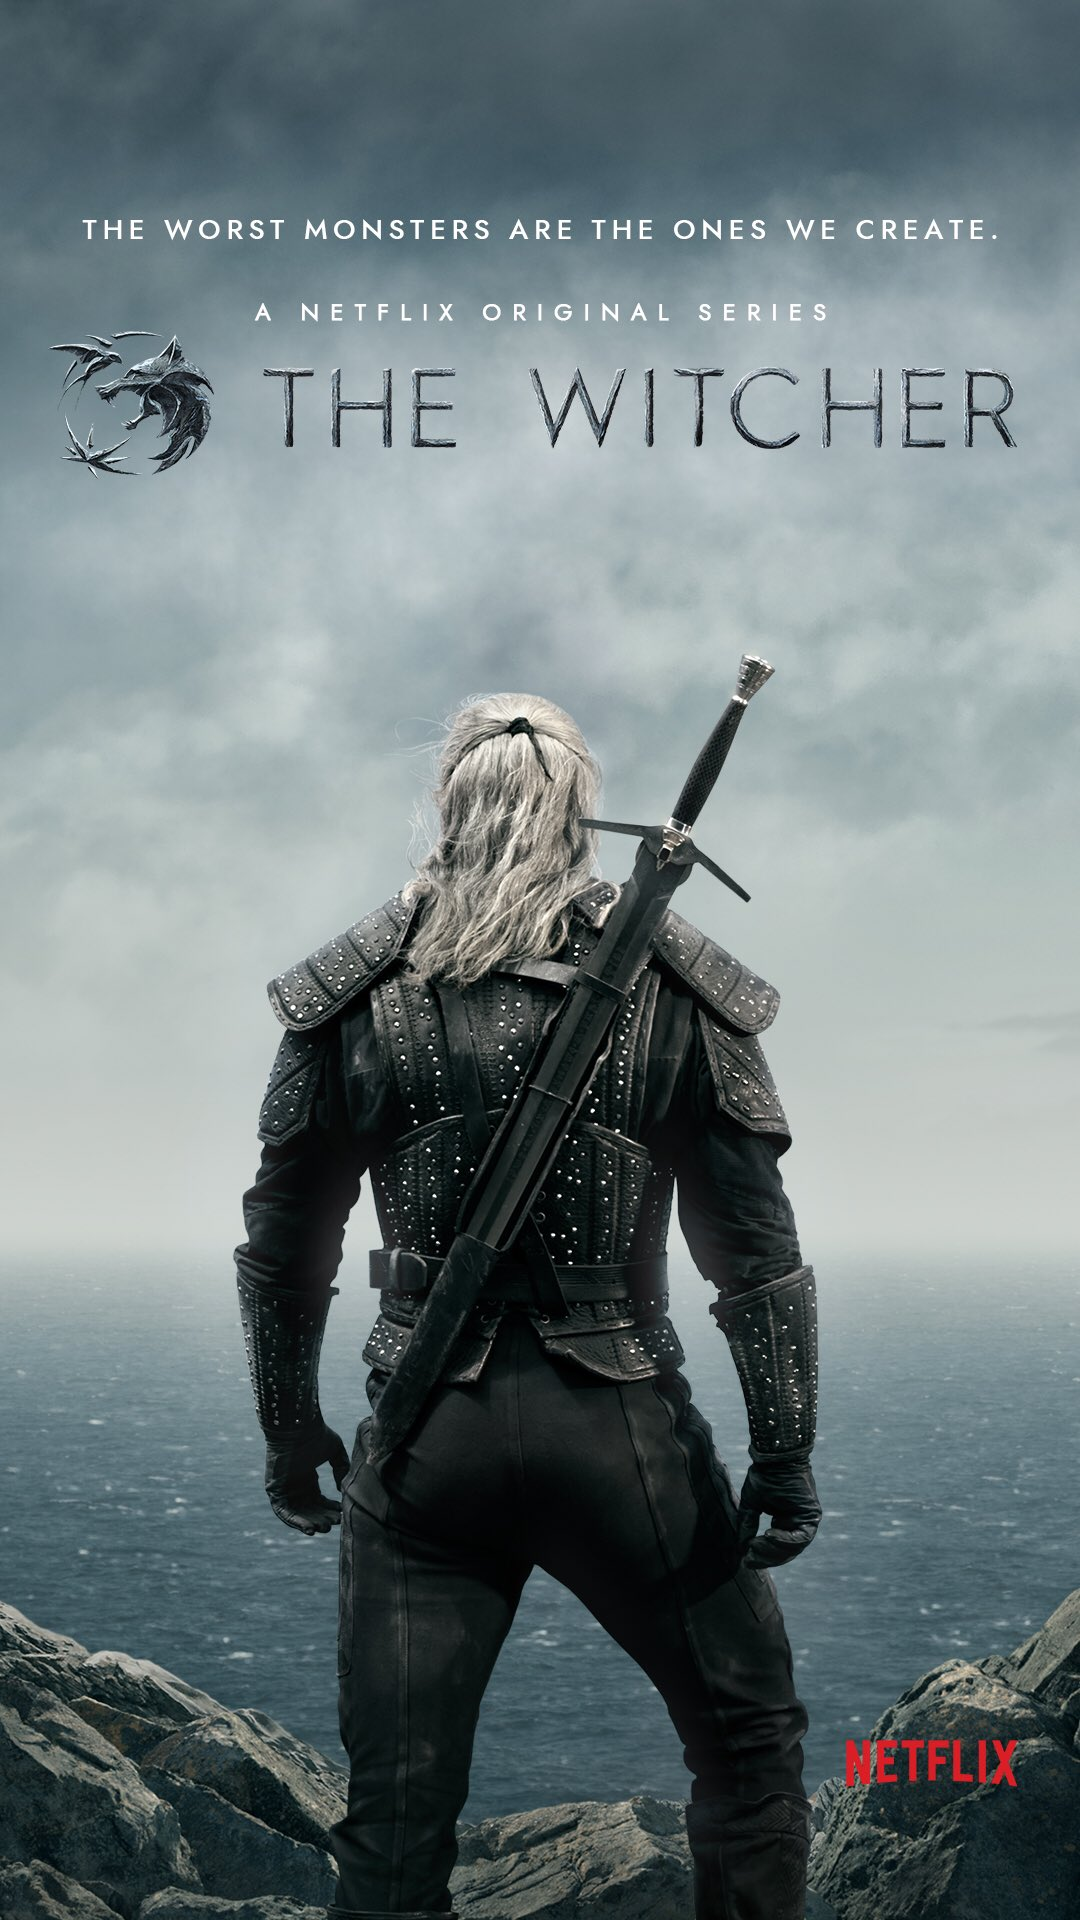 ᐈ Netflix share The Witcher poster and a few character images ...